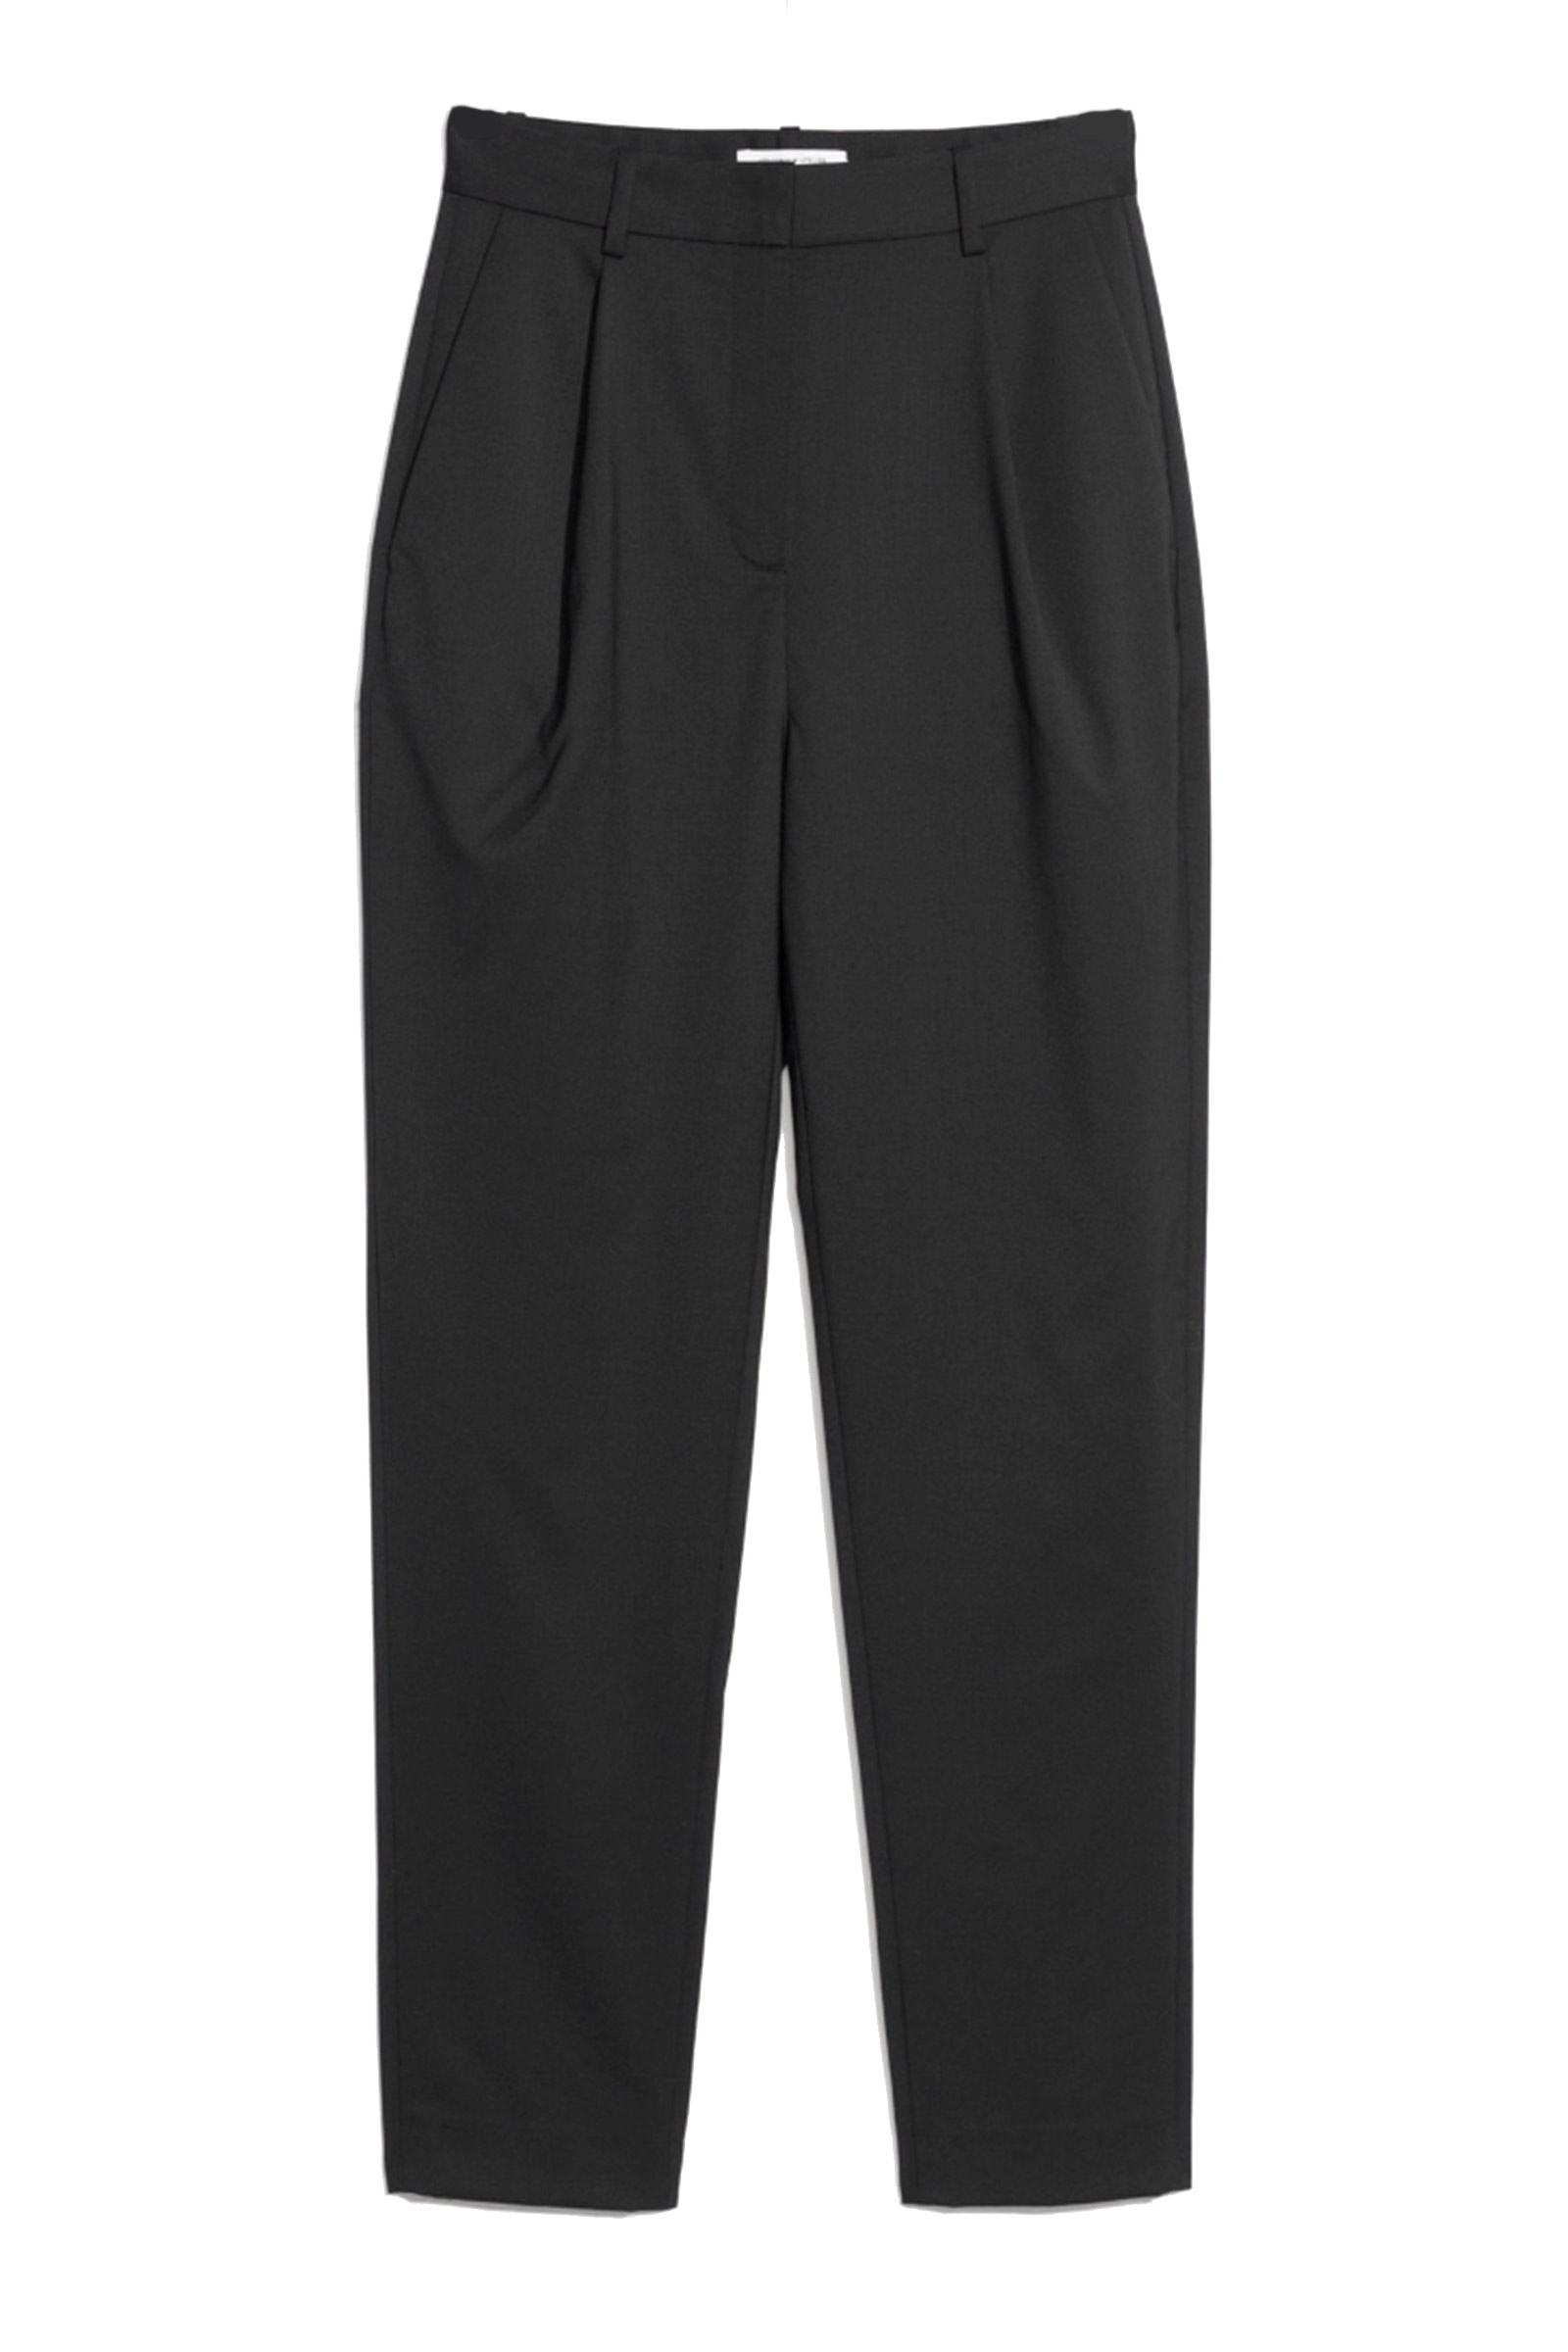 Click to Buy & Other Stories Black High Waisted Tapered Trousers